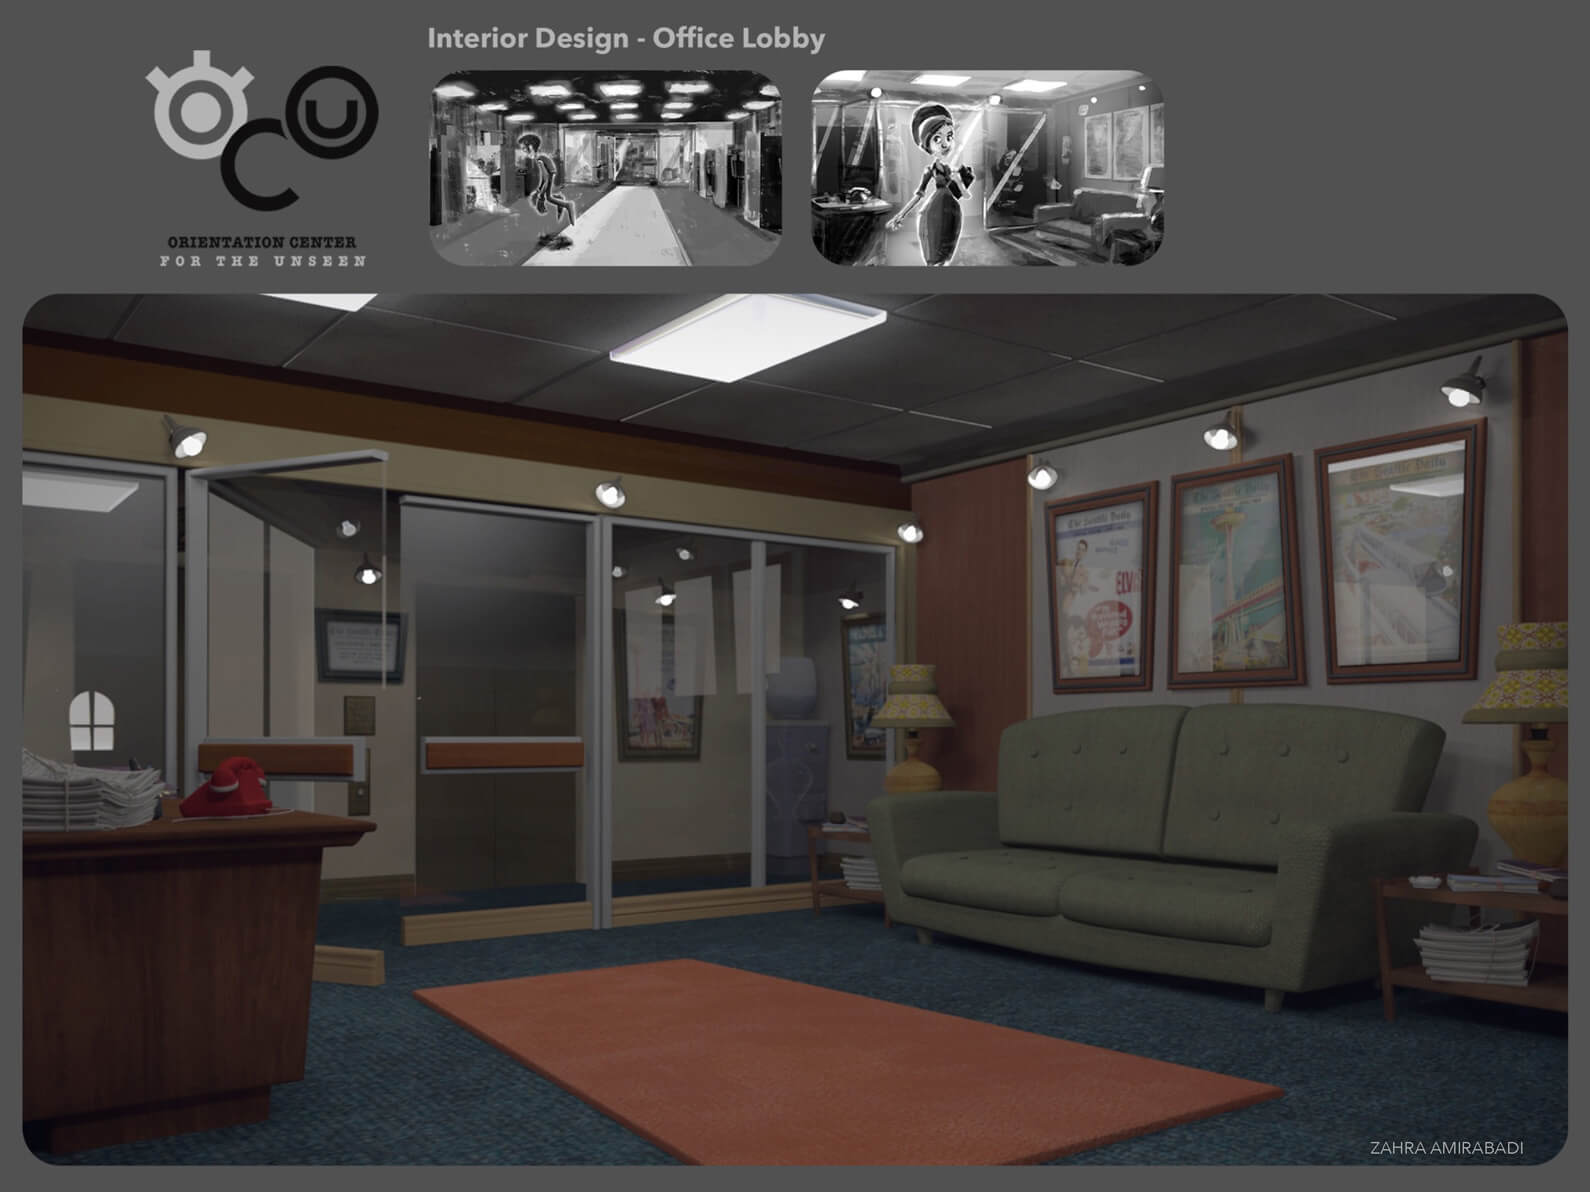 3D color and lighting interior concept design for the lobby set in Orientation Center for the Unseen